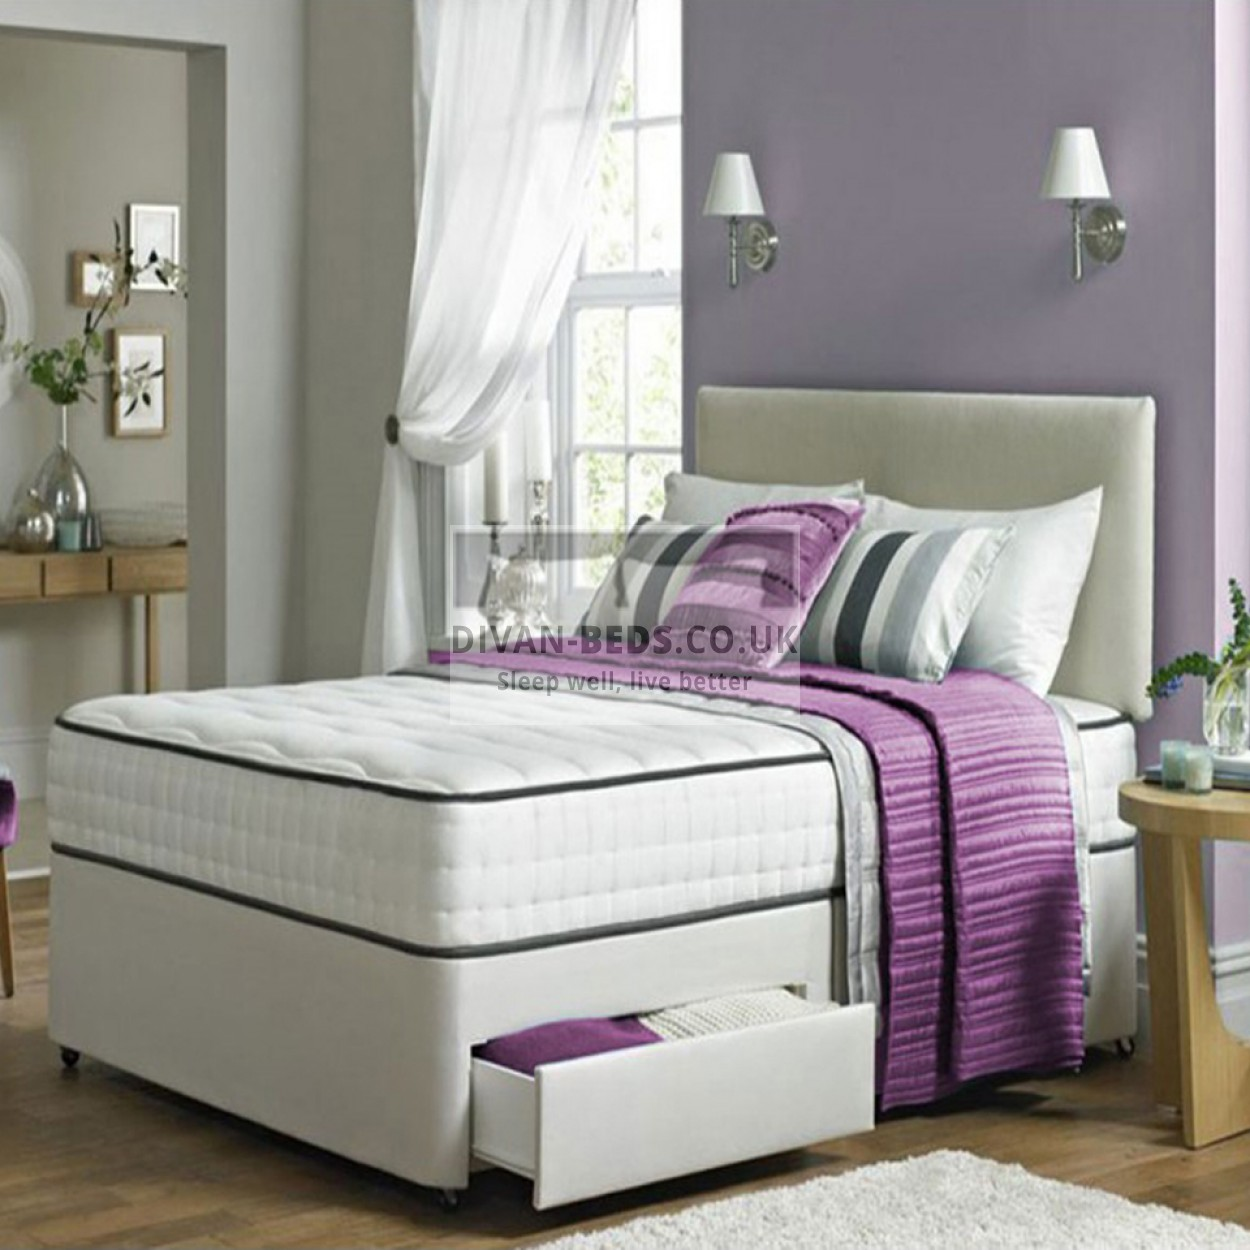 Kensington Divan Bed Set With High Density Open Spring